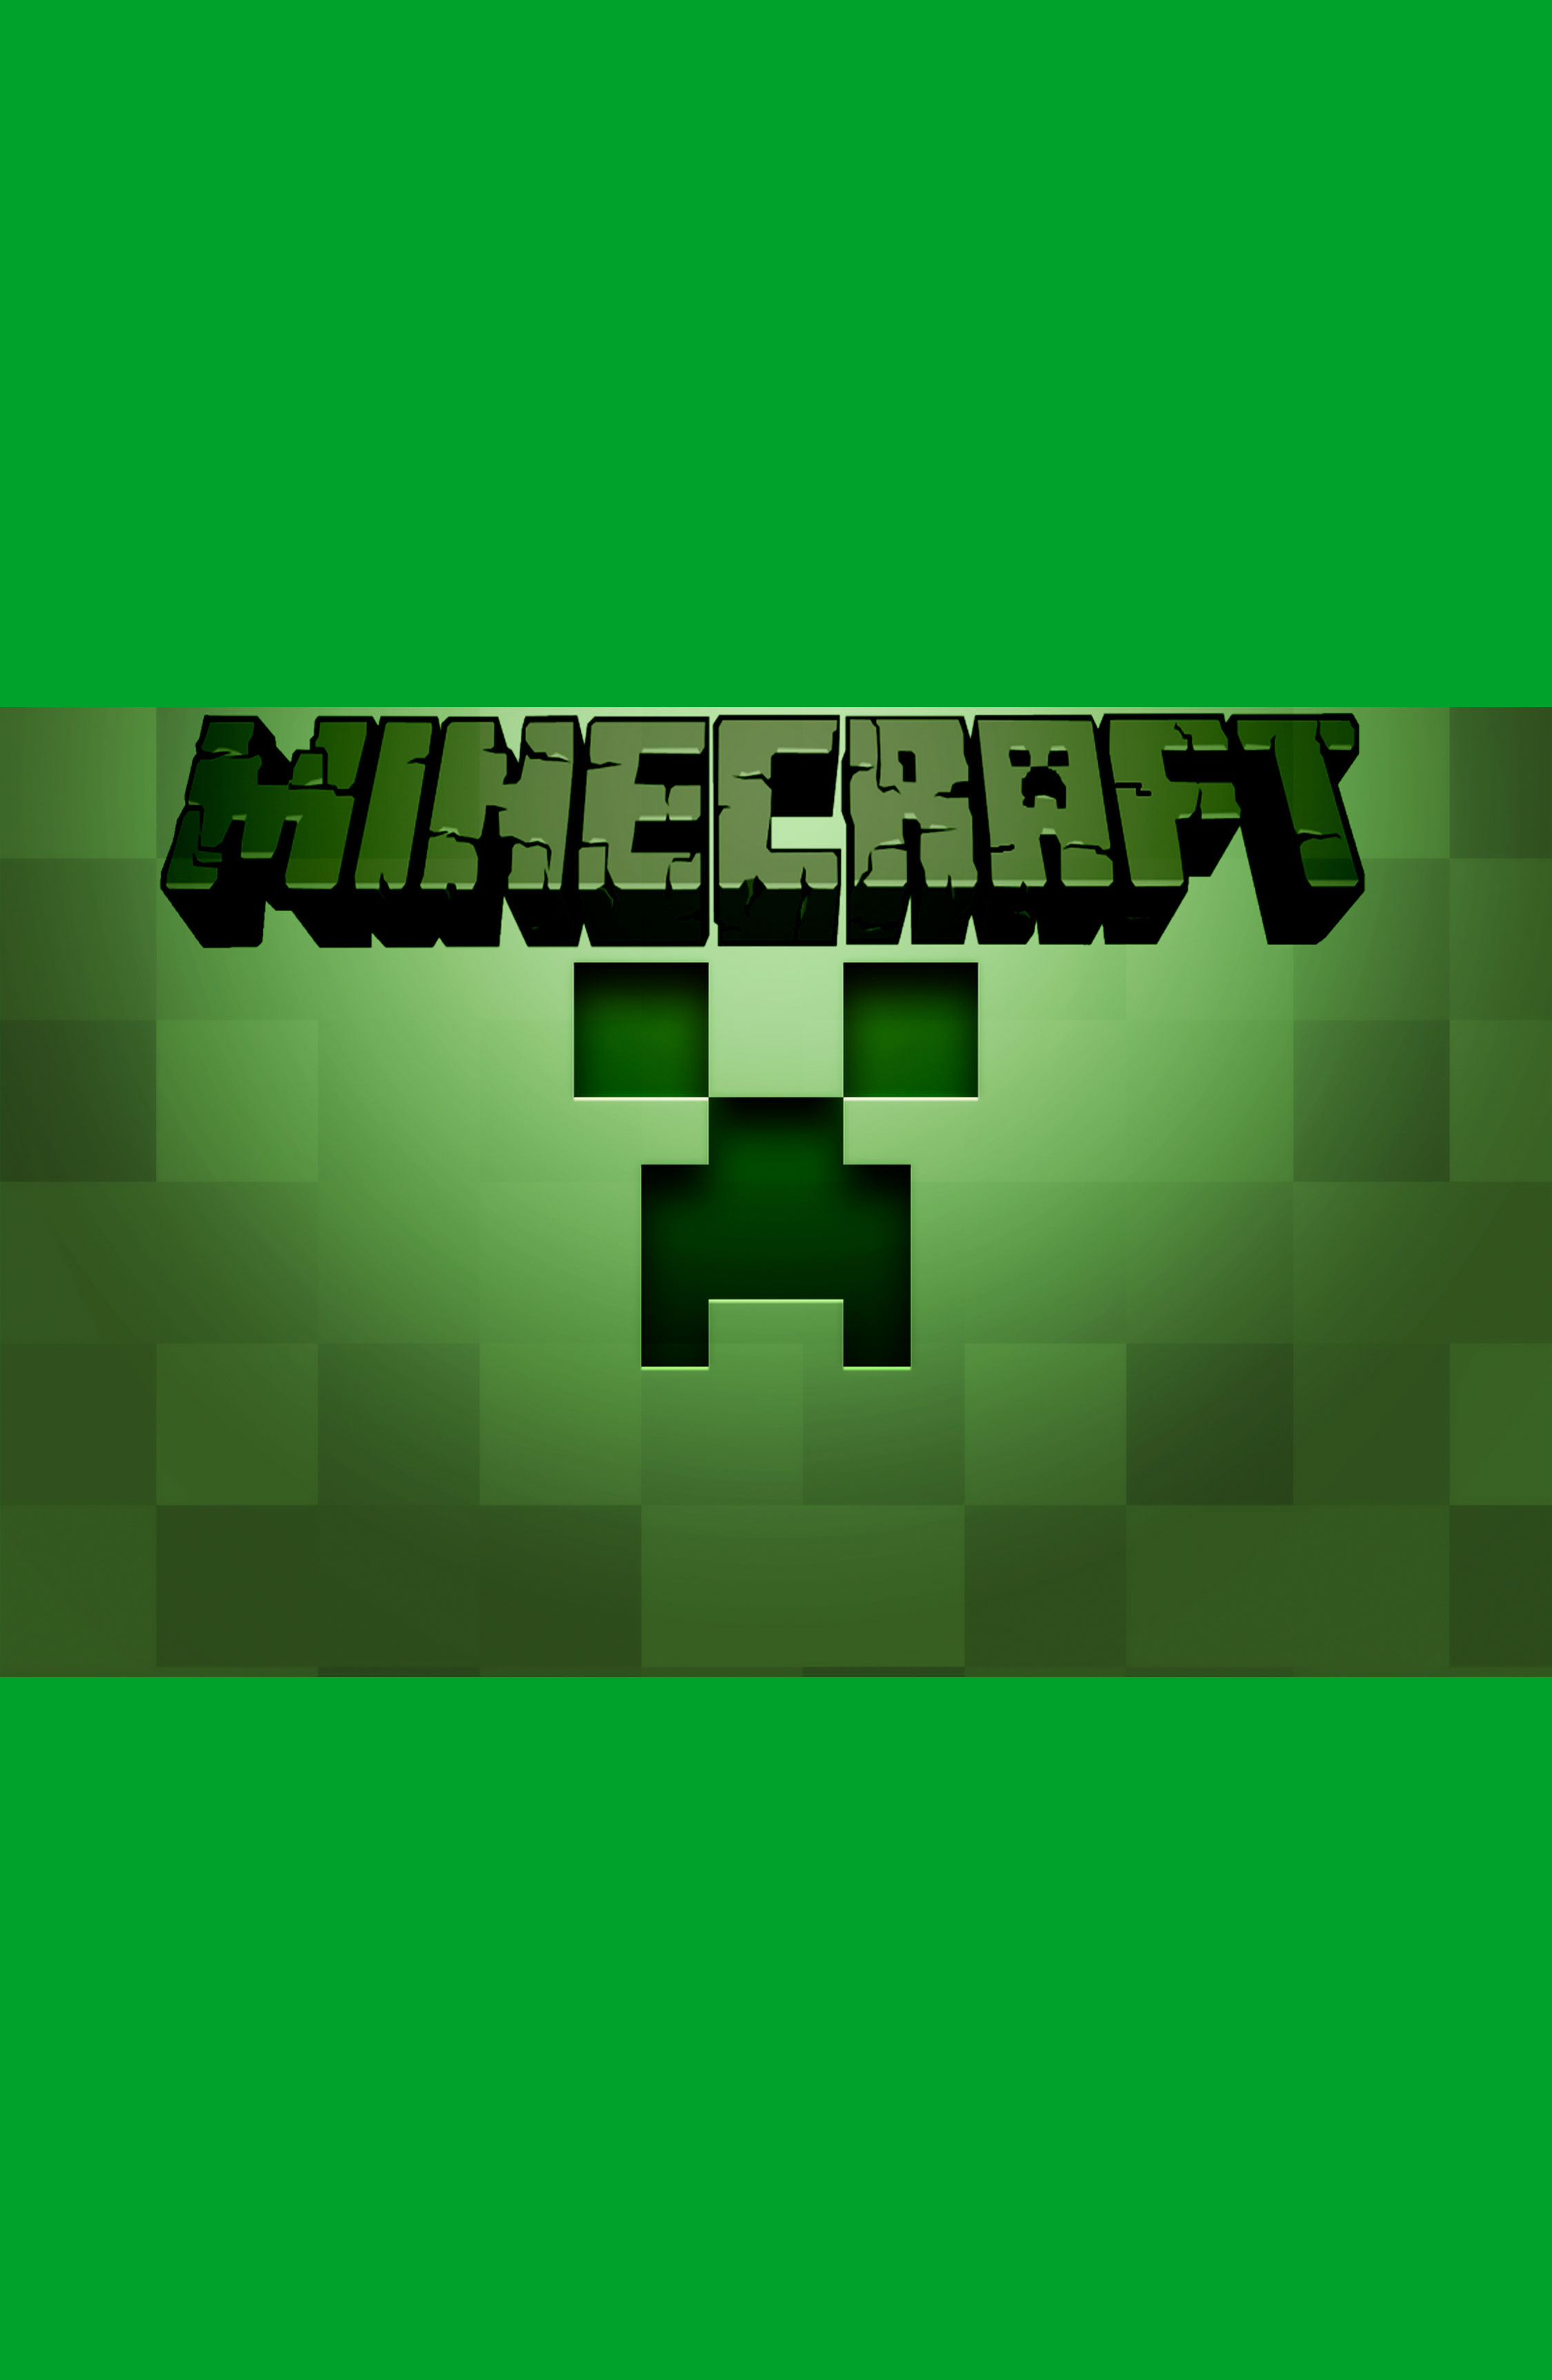 Mouse Craft Minecraft